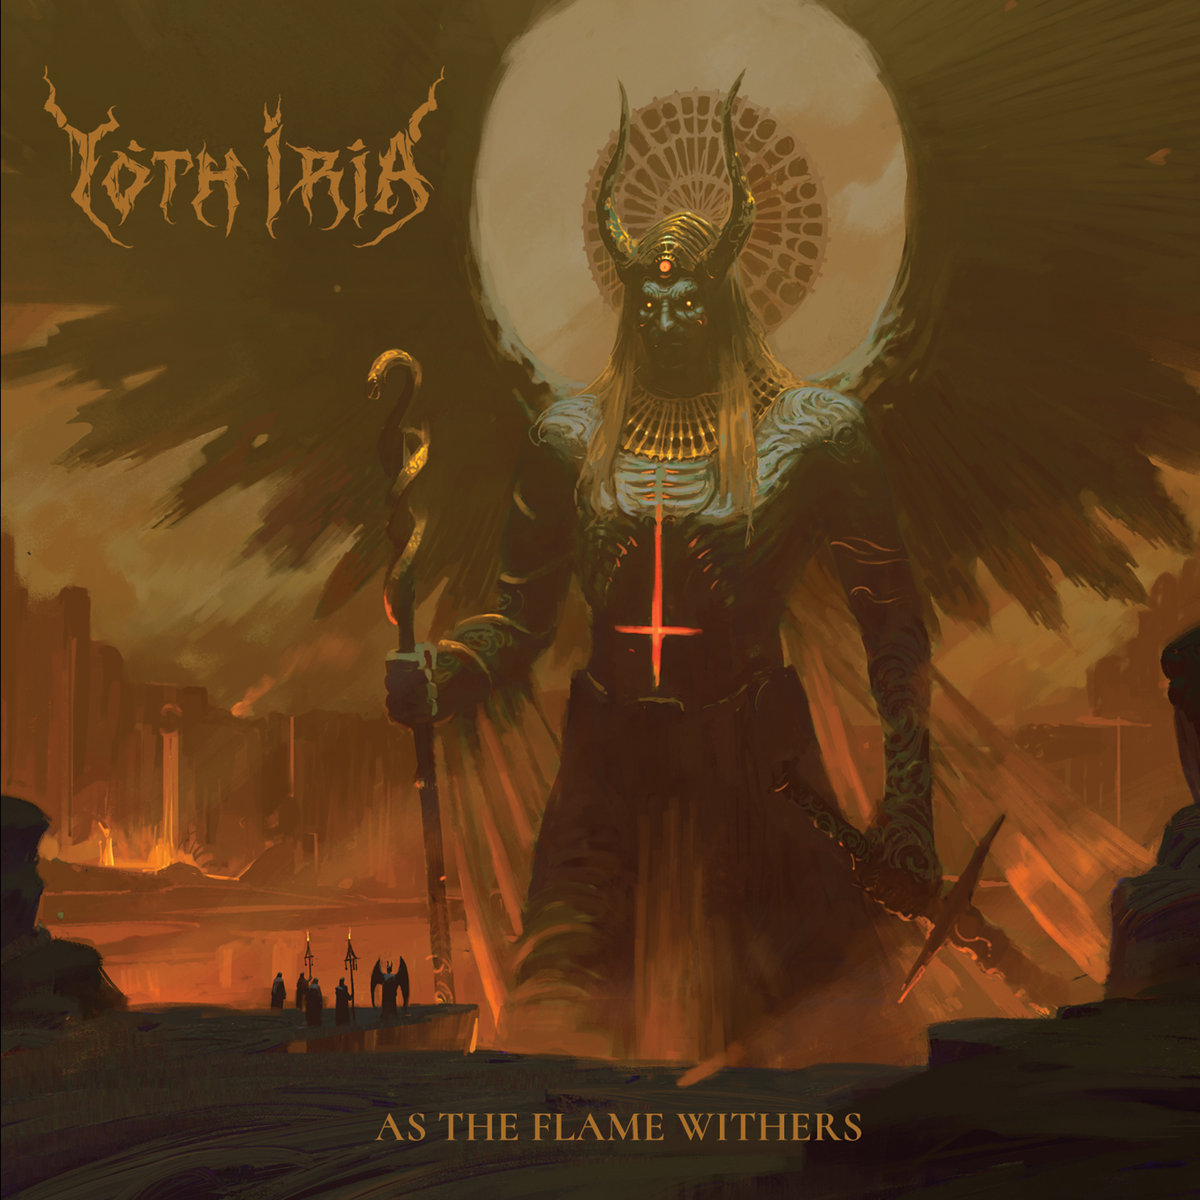 Yoth Iria⛧As The Flame Withers |review